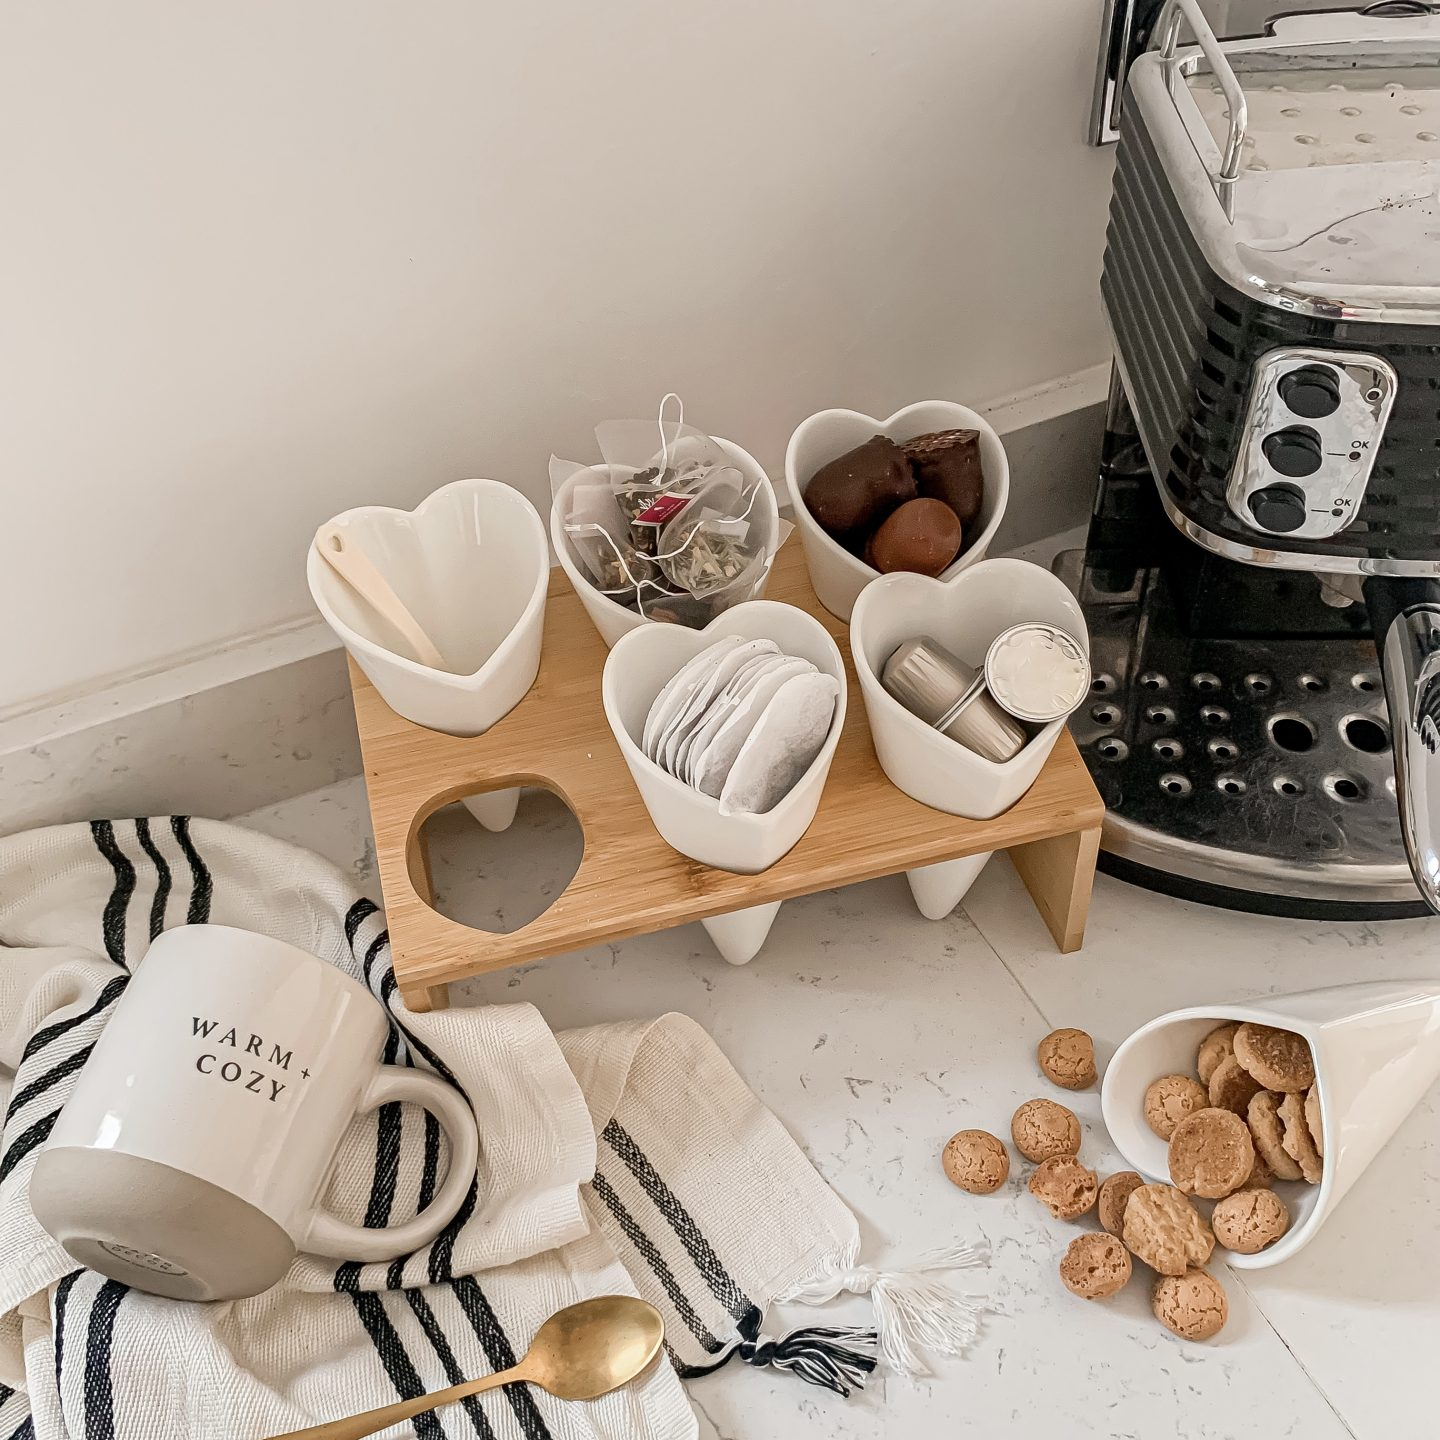 5 WAYS TO USE OUR HEART SNACKING STATION